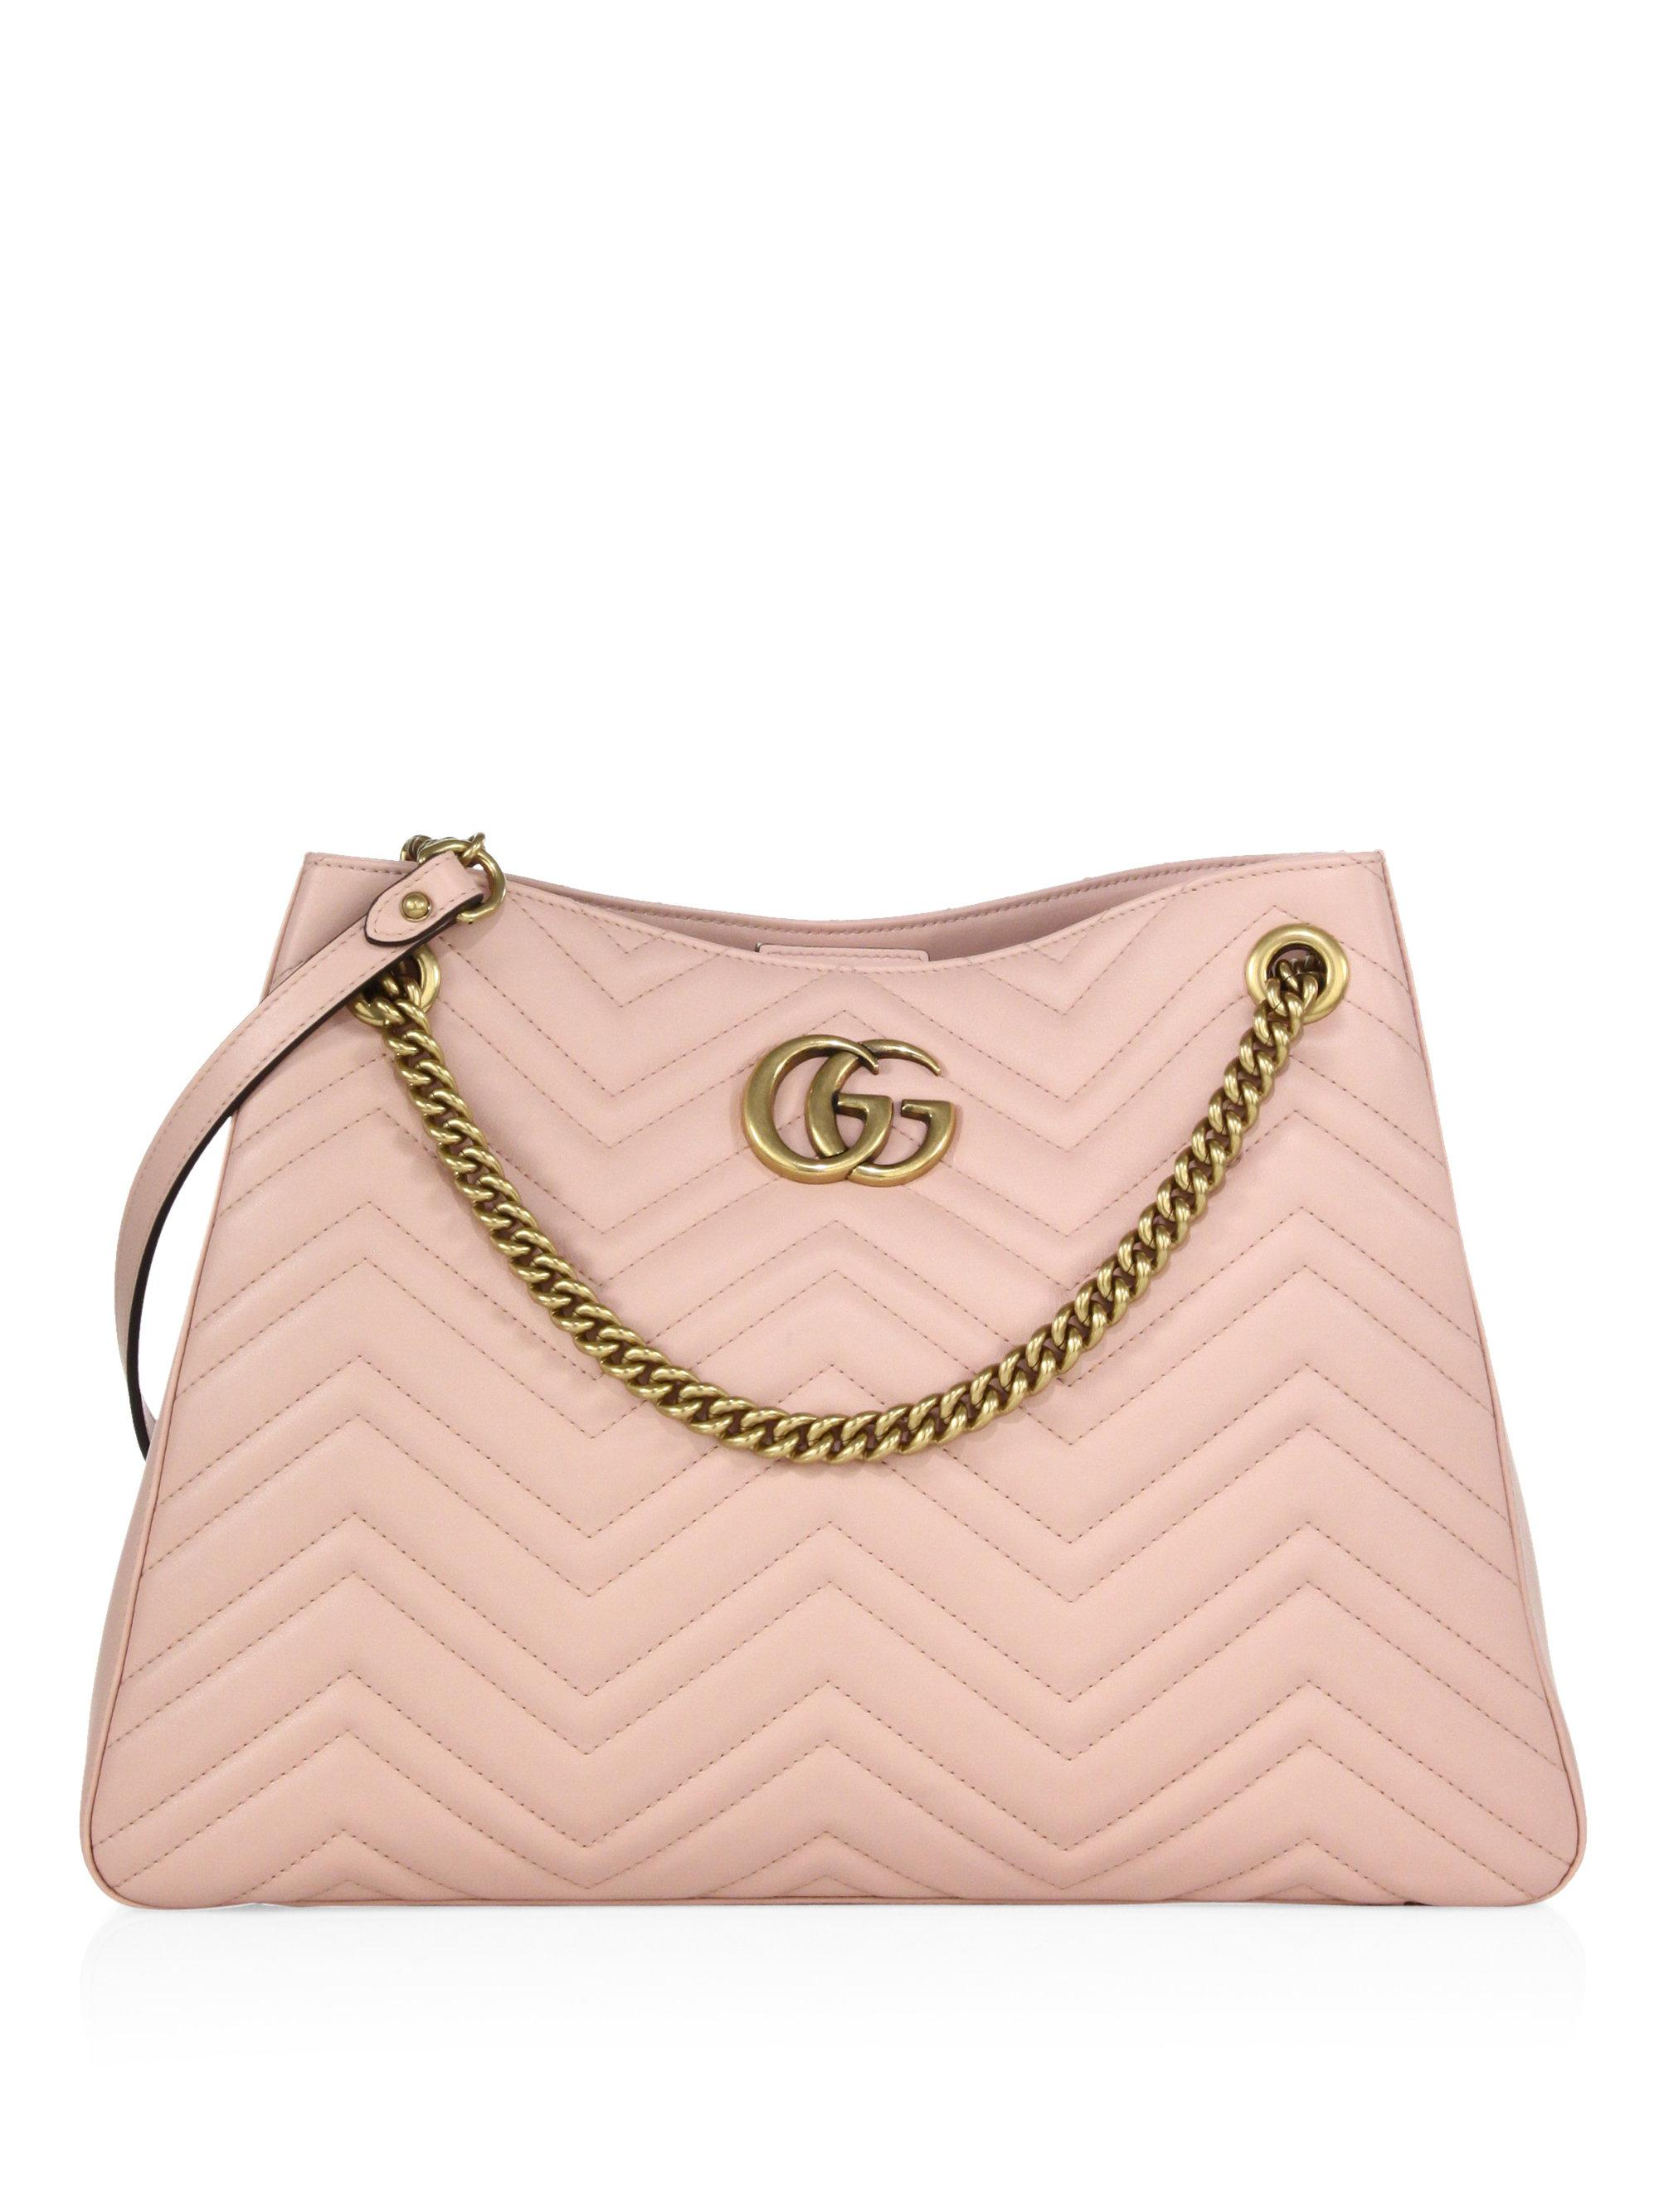 9c618c4185f Gucci Gg Marmont Matelasse Leather Shoulder Bag in Pink - Lyst